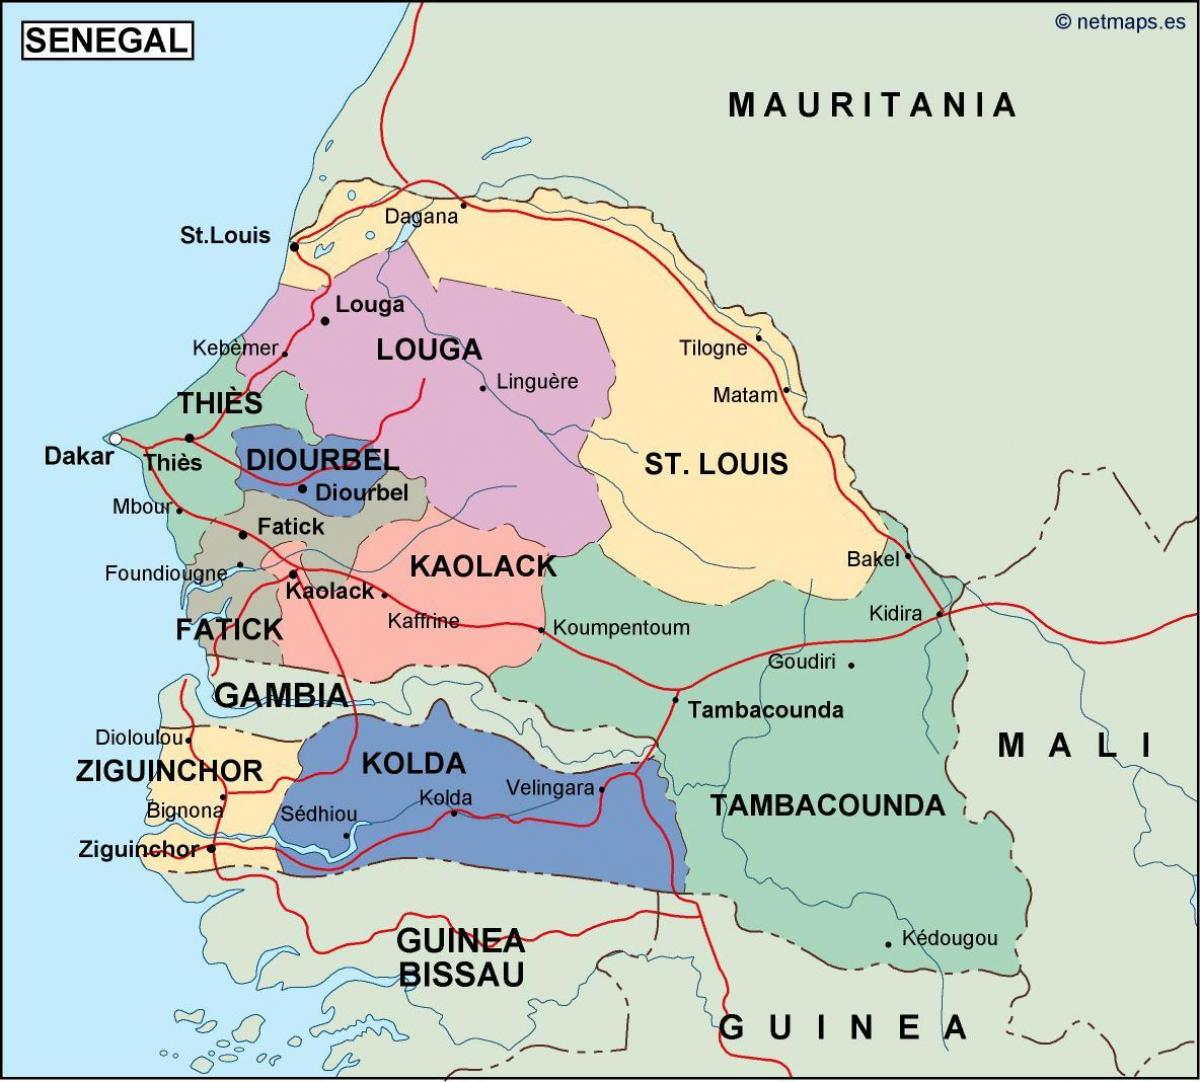 Senegal country map   Map of Senegal country (Western Africa   Africa)